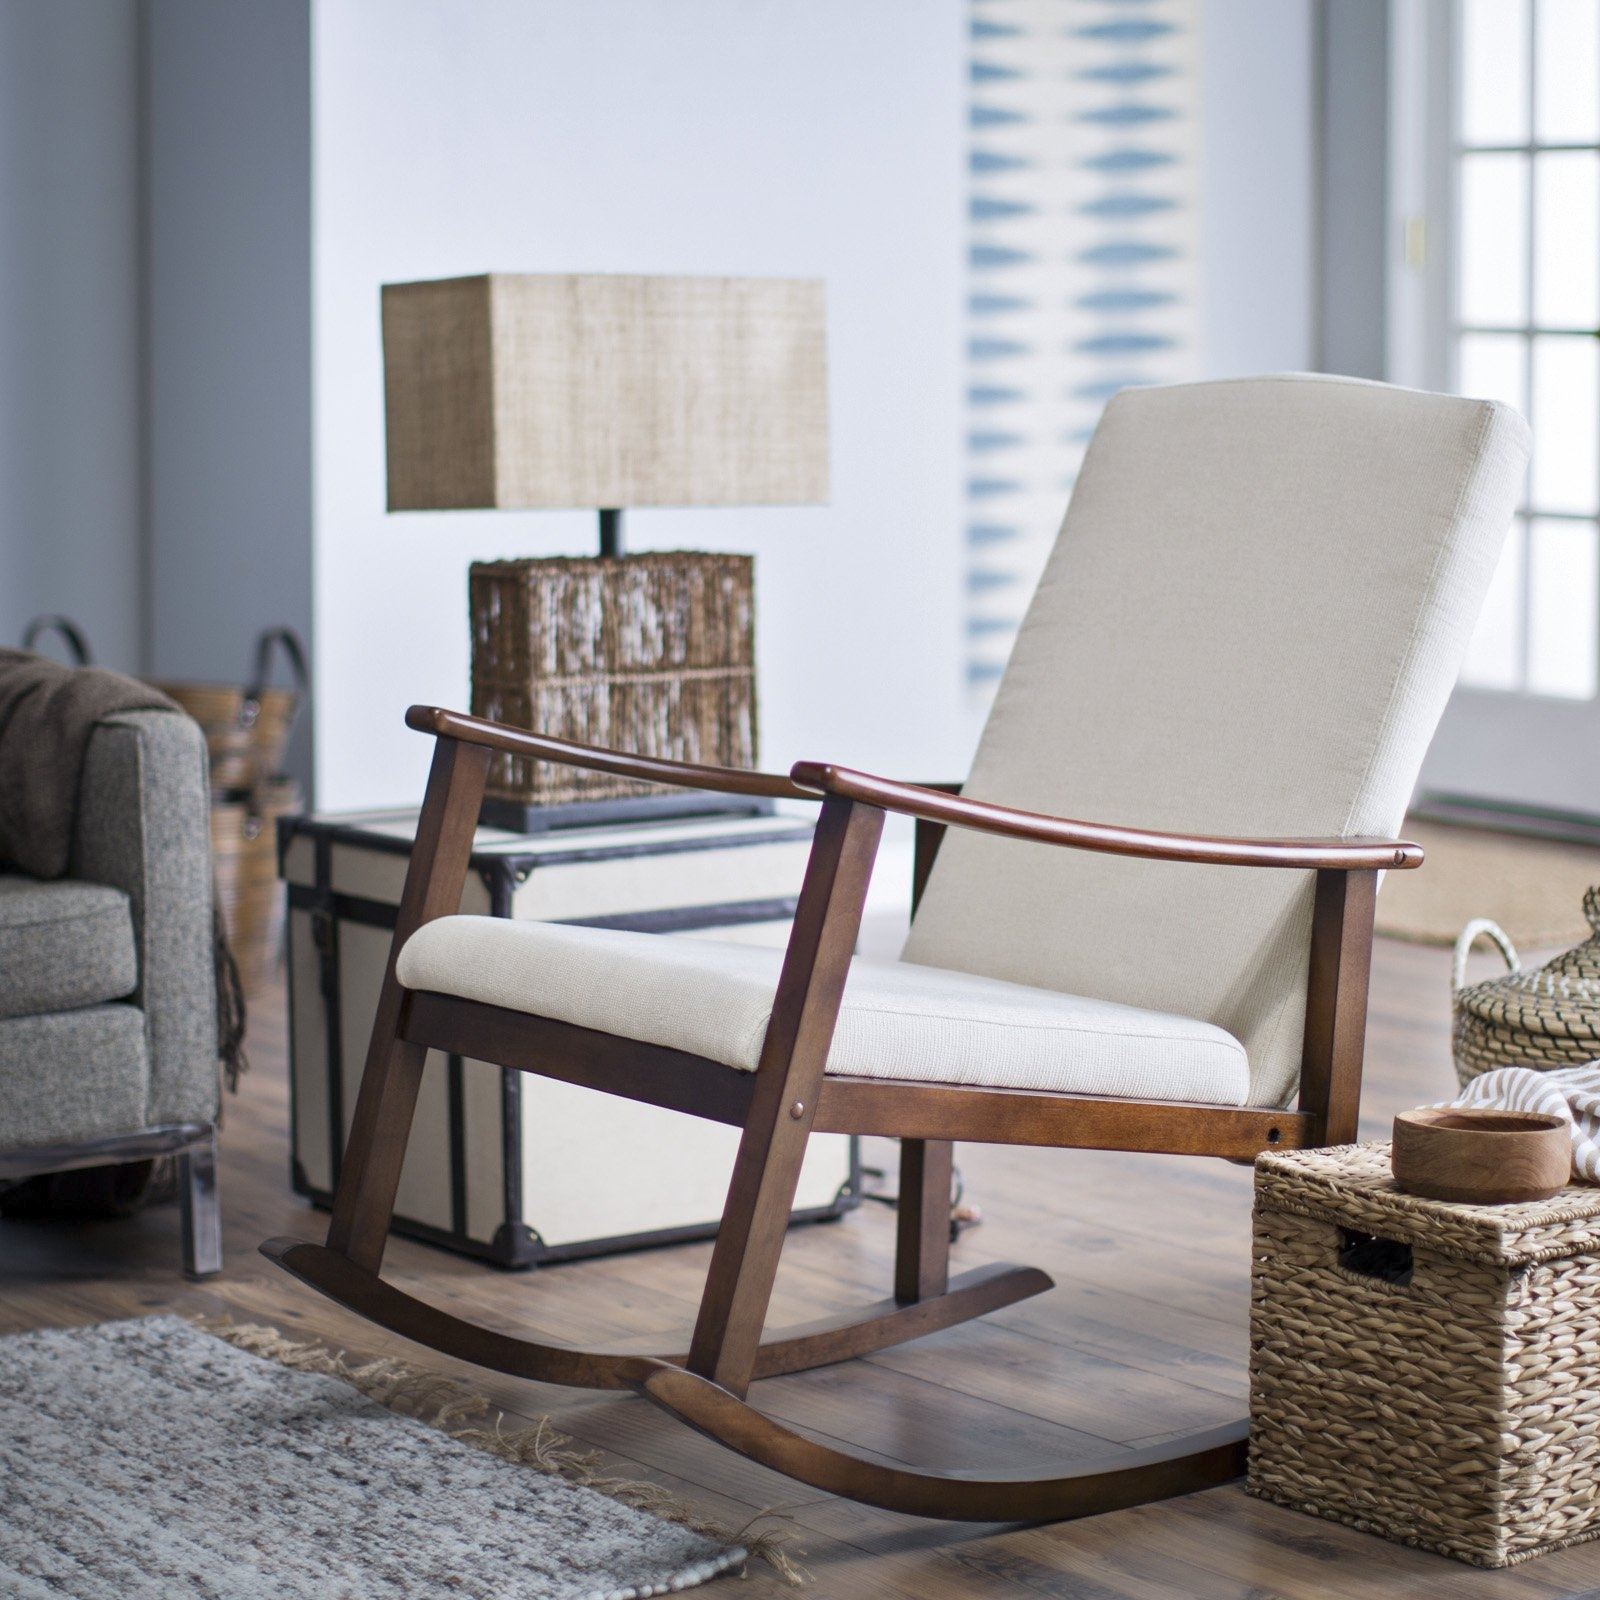 Current Rocking Chairs For Living Room Inside Belham Living Holden Modern Indoor Rocking Chair – Upholstered (View 3 of 20)